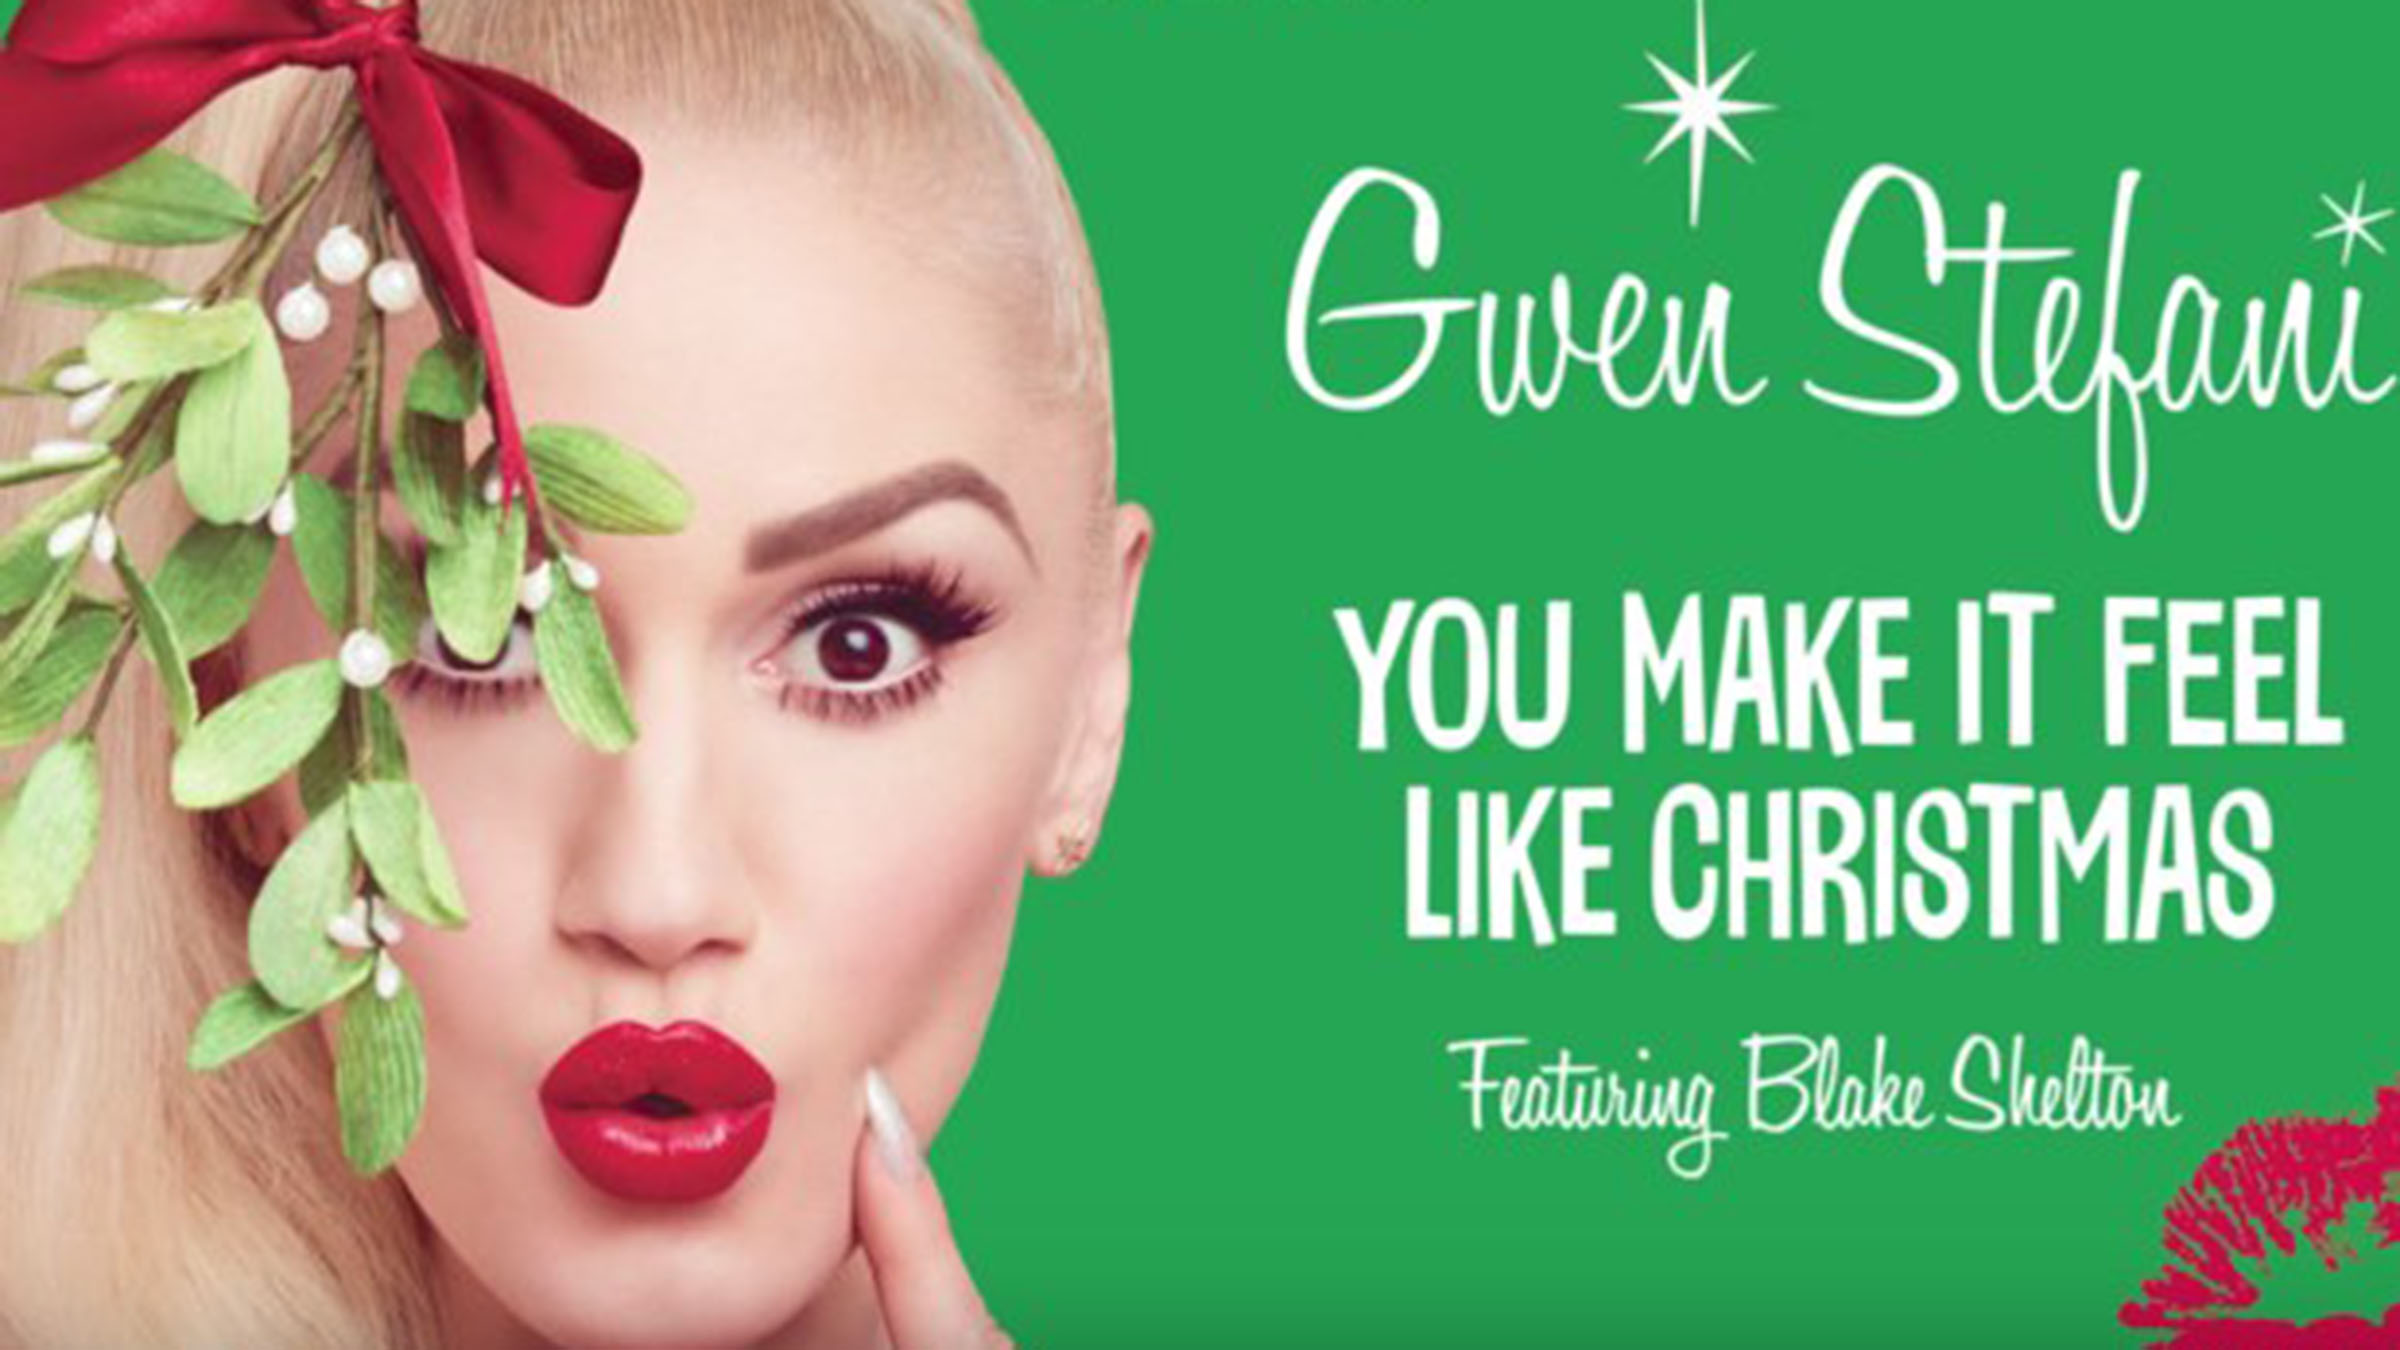 Gwen stefani you make it feel christmas